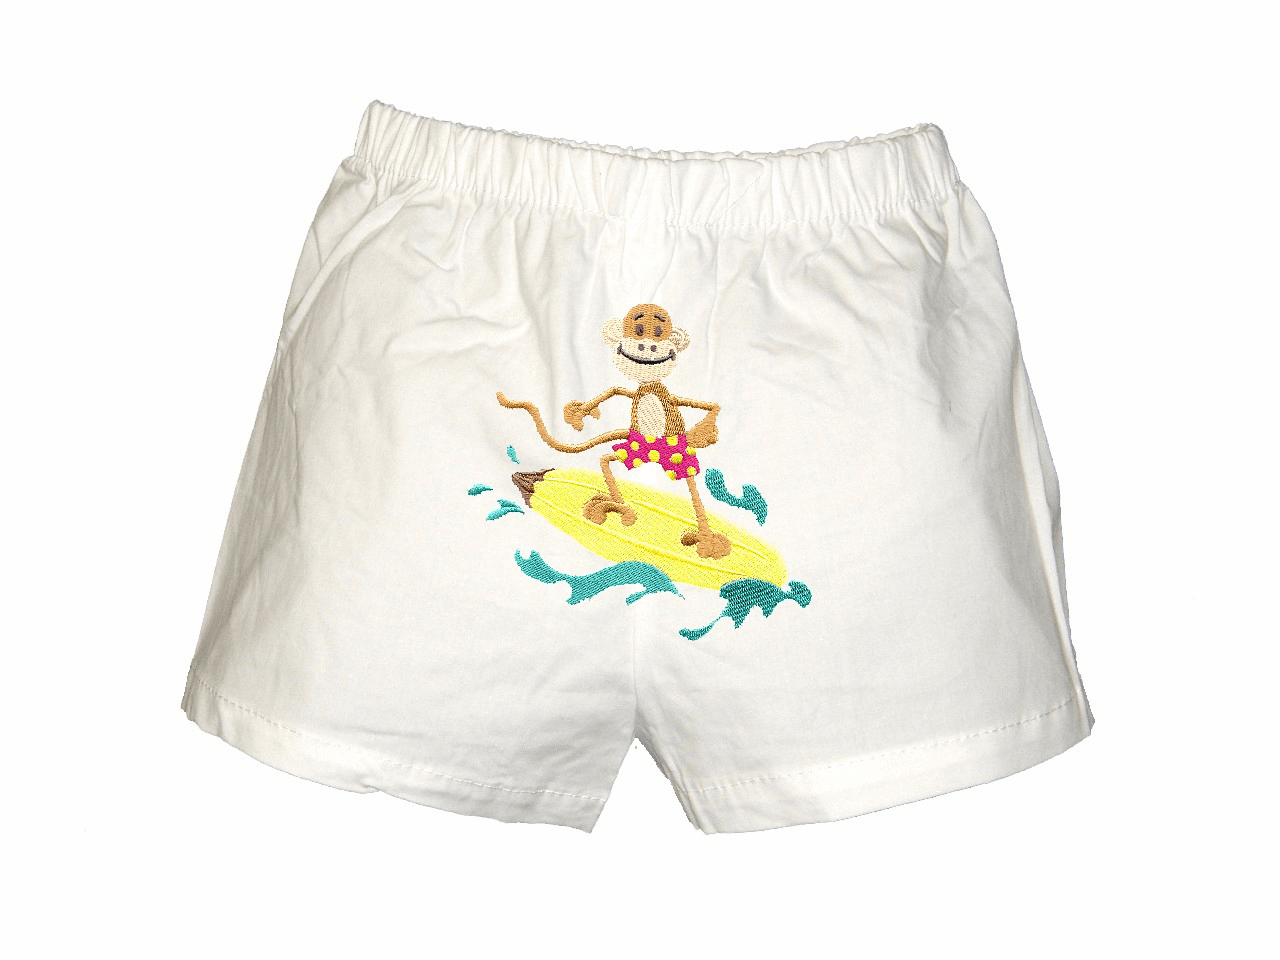 Surfer Monkey Personalized Baby Infant Boxers White